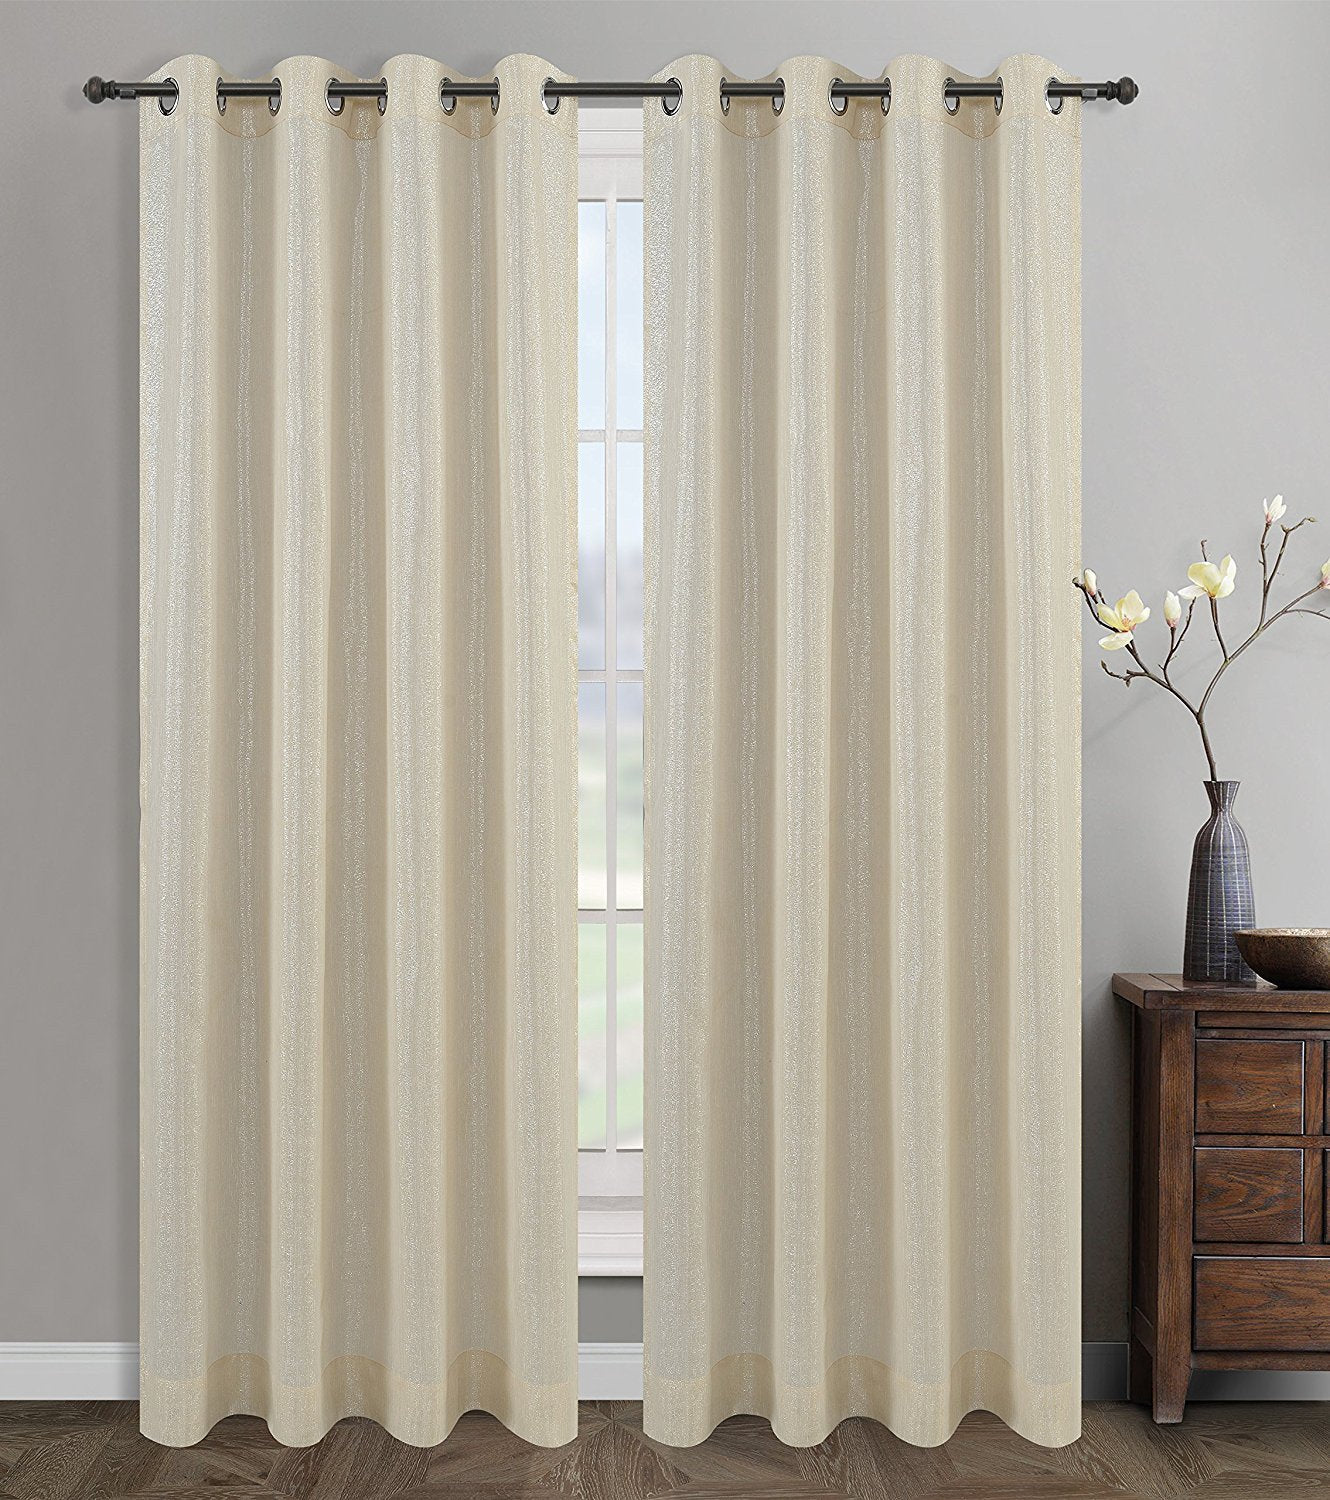 Cosmo Set of 2 Sheer Curtain Drapery Panels with Grommets - 4 Colors